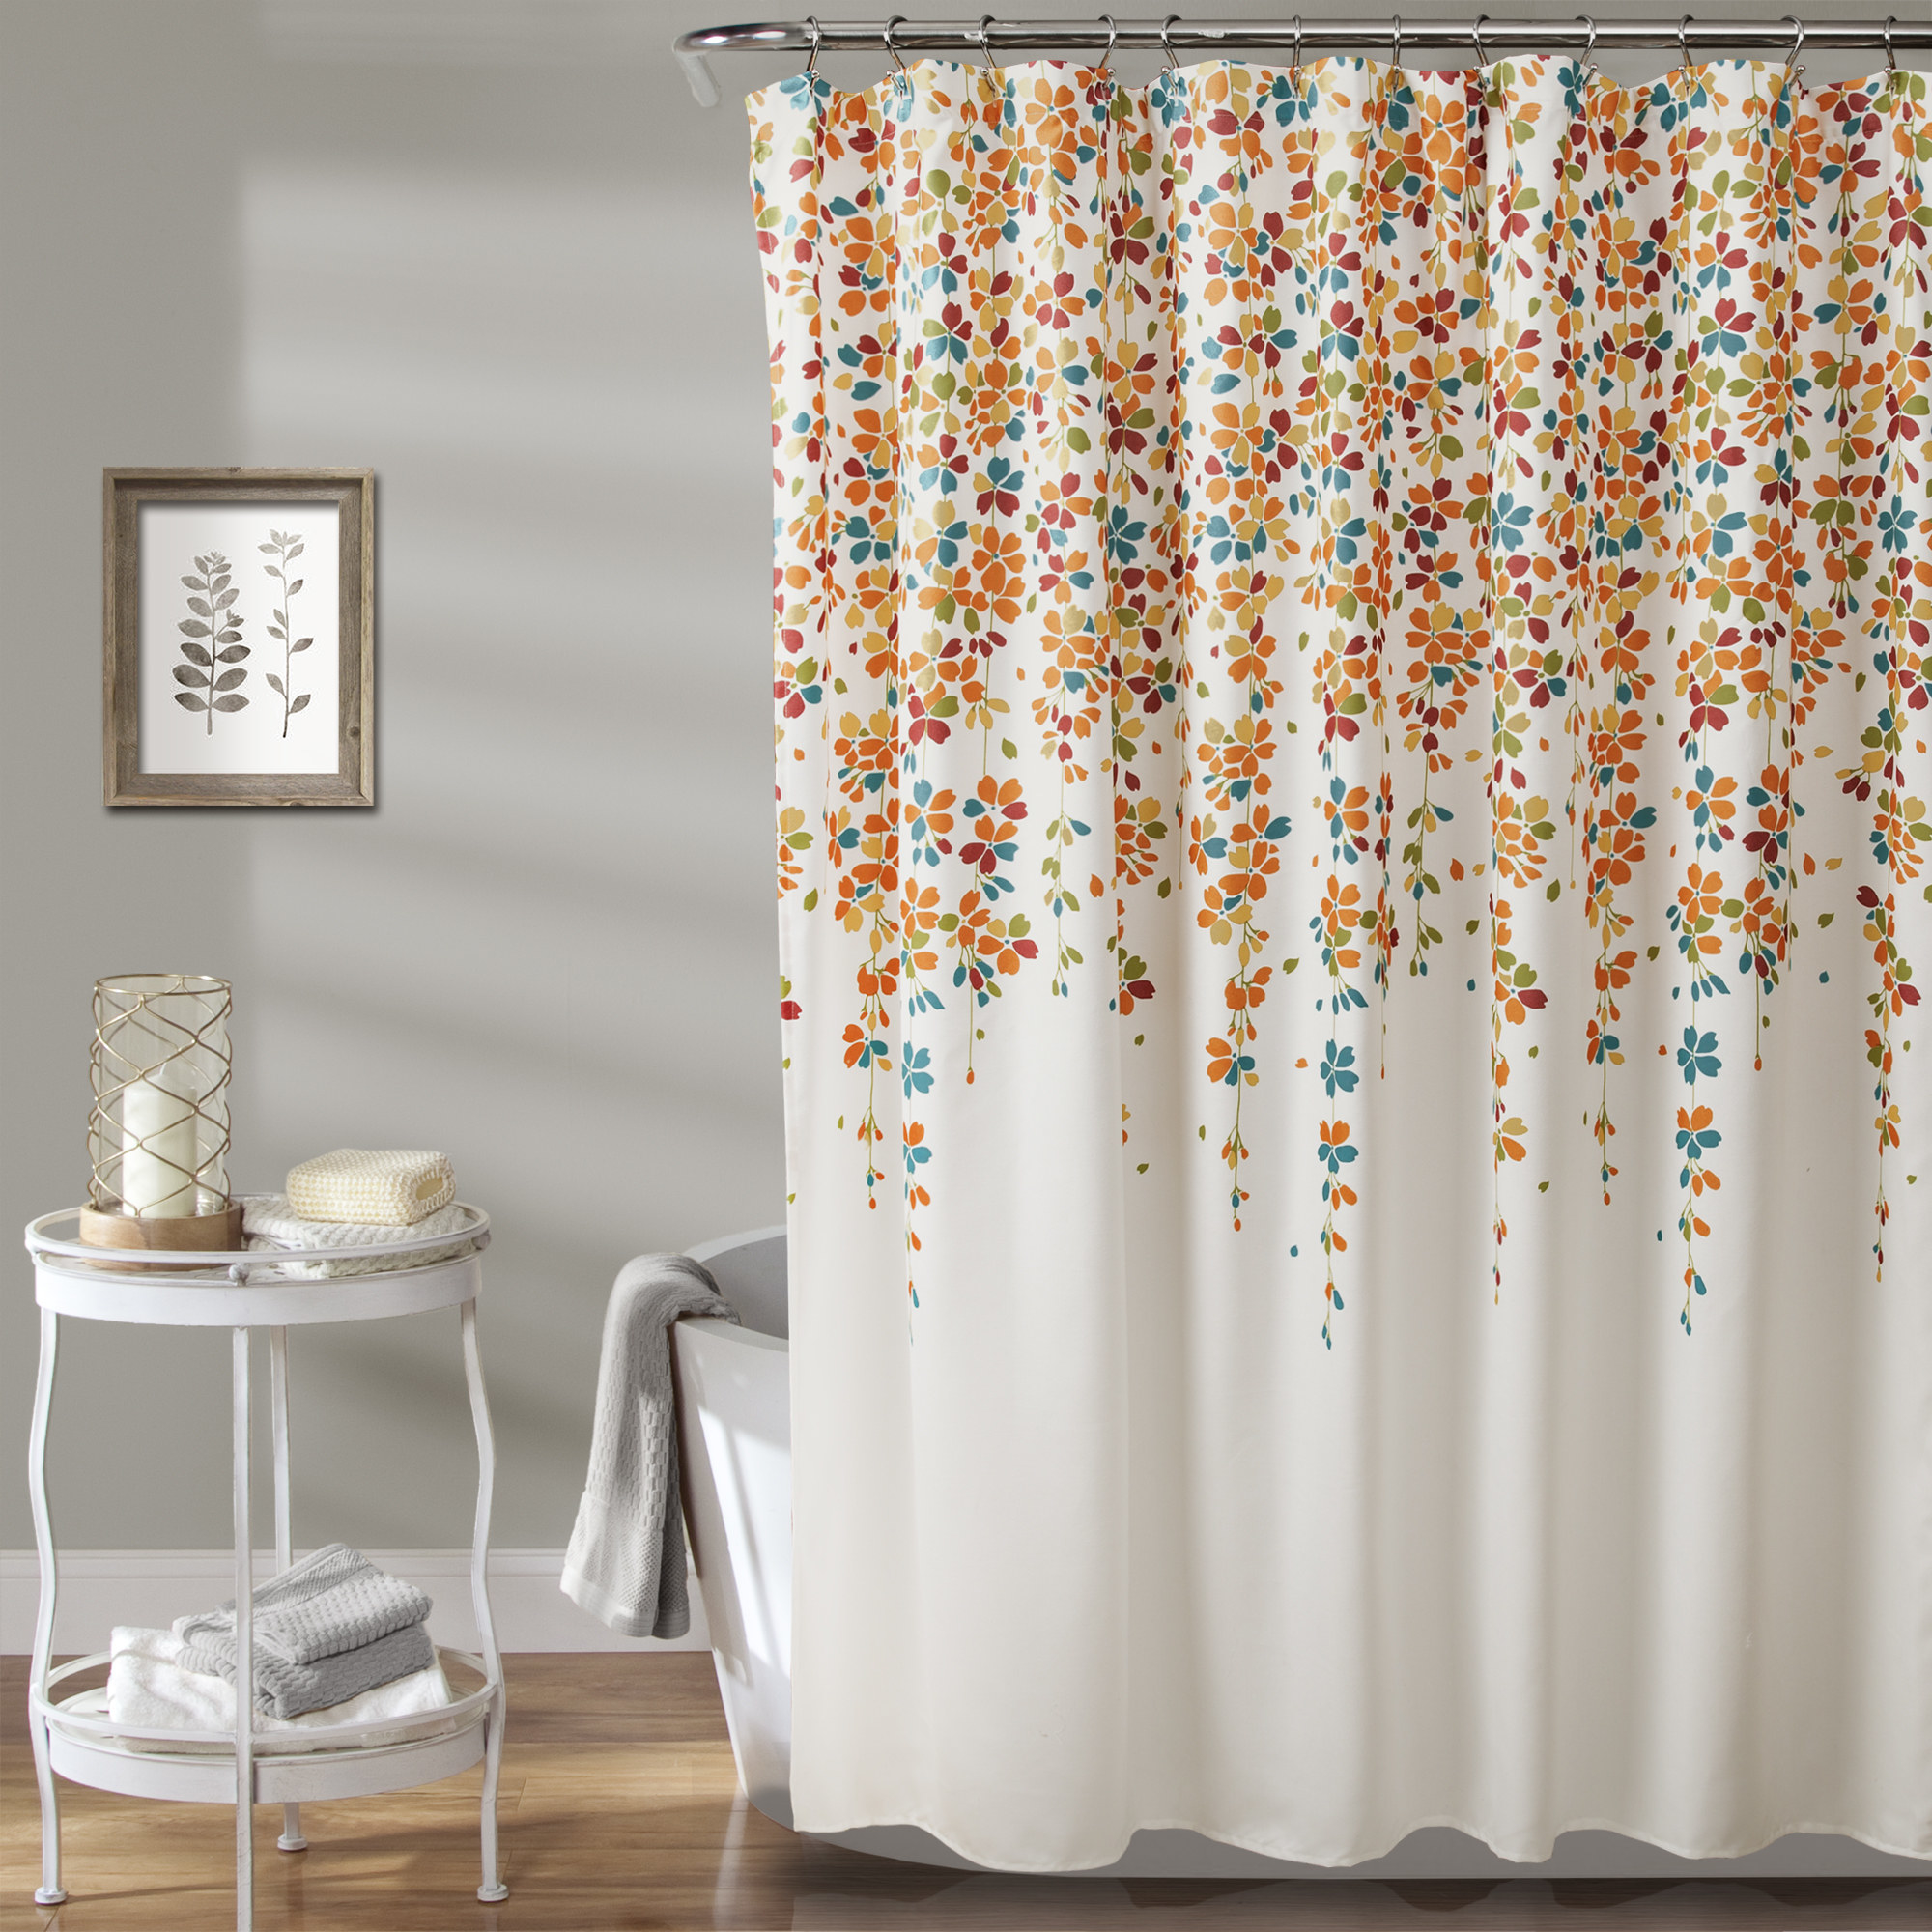 The shower curtain hung in a bathroom